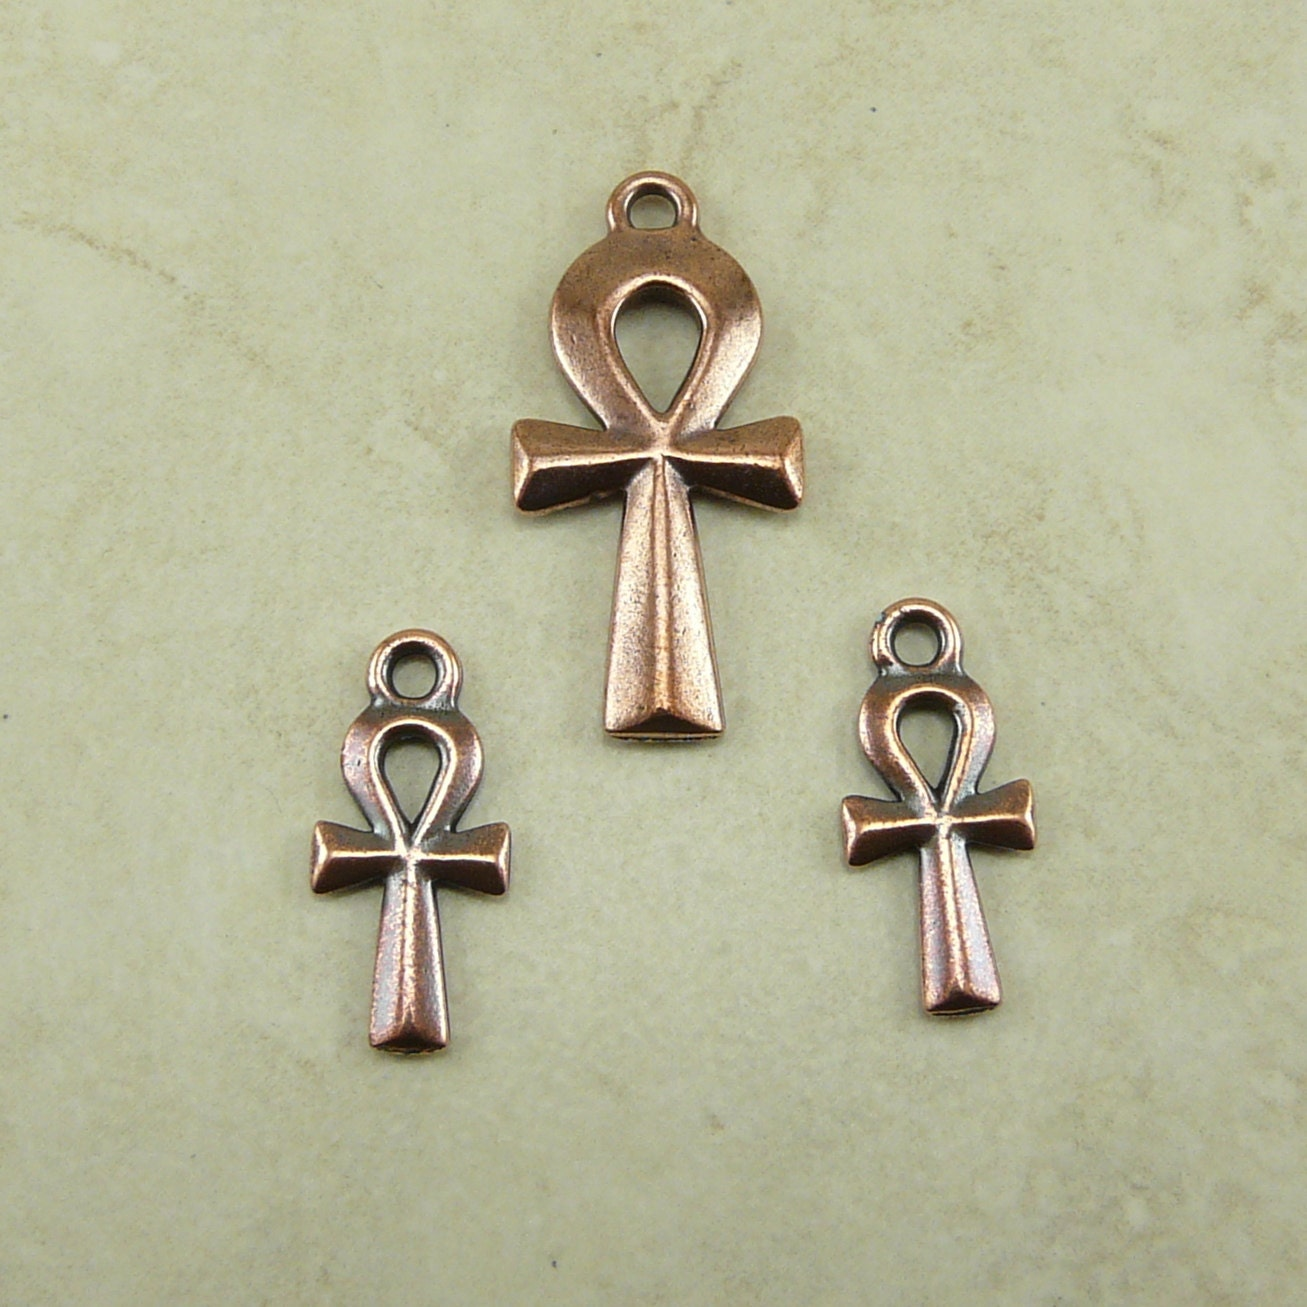 3 tierracast ankh charm and pendant mix pack copper